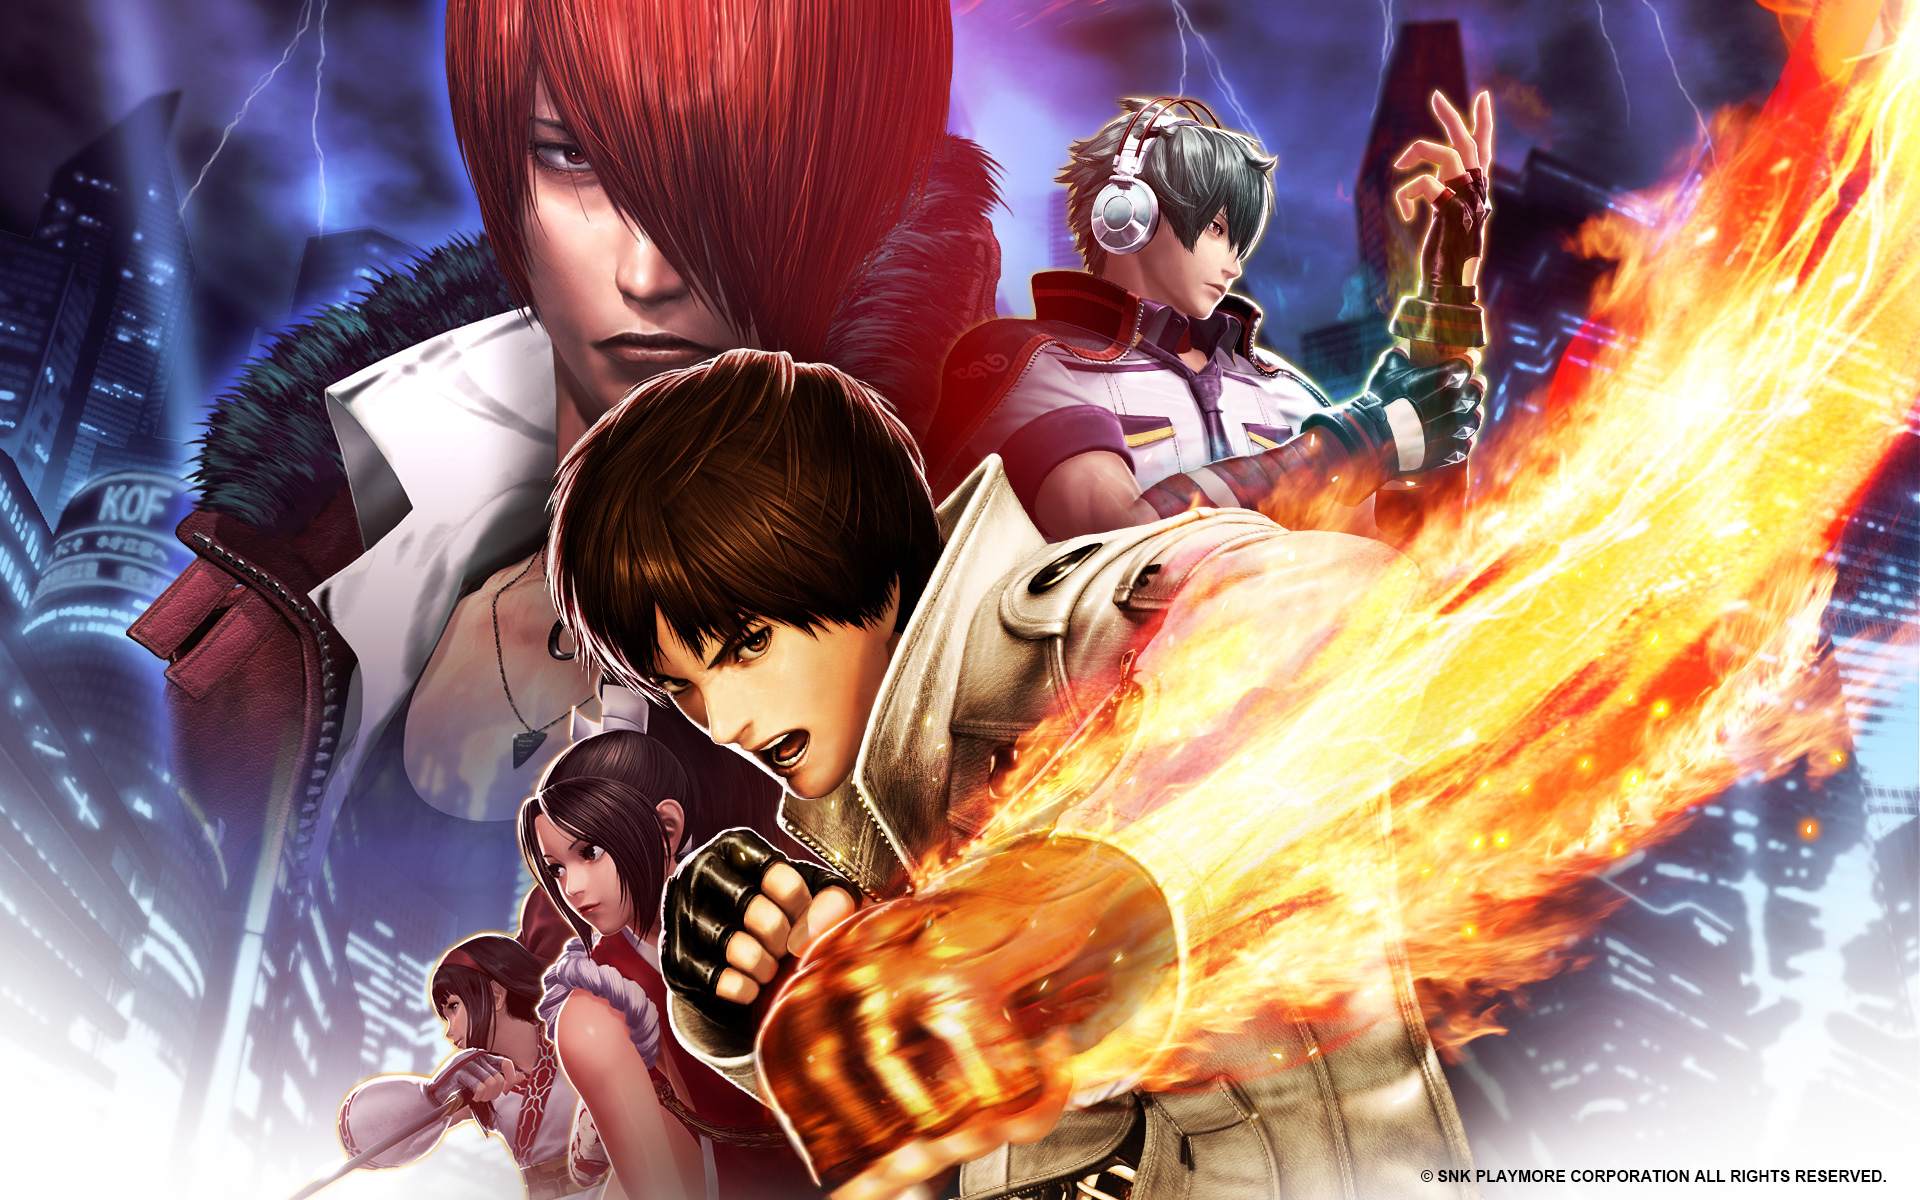 Come scaricare The King of Fighters per Android e Blackberry 3